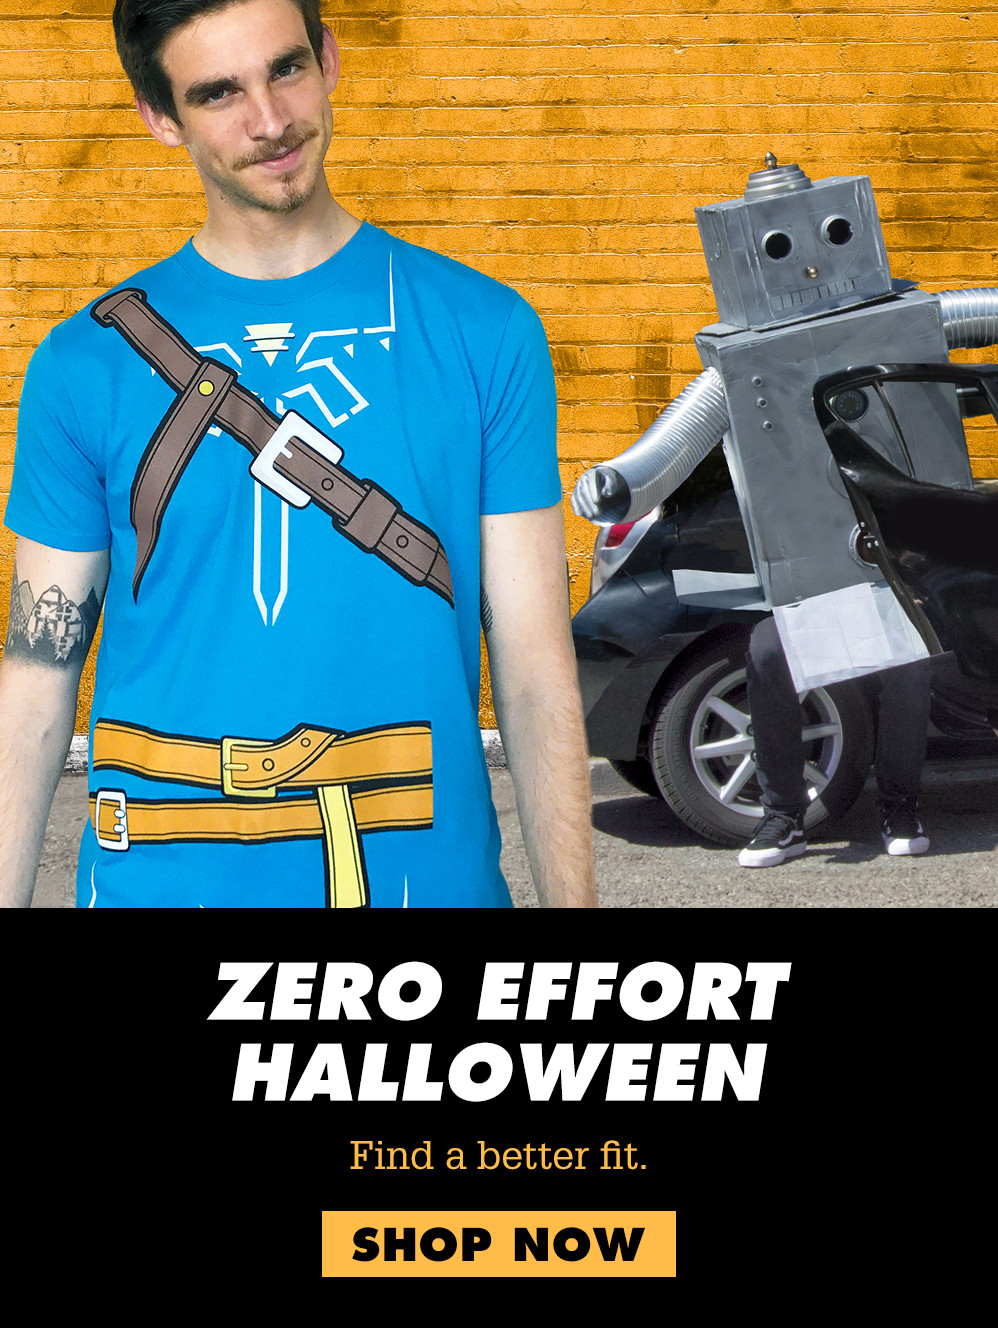 Zero Effort Halloween. Find a better fit. Shop Now